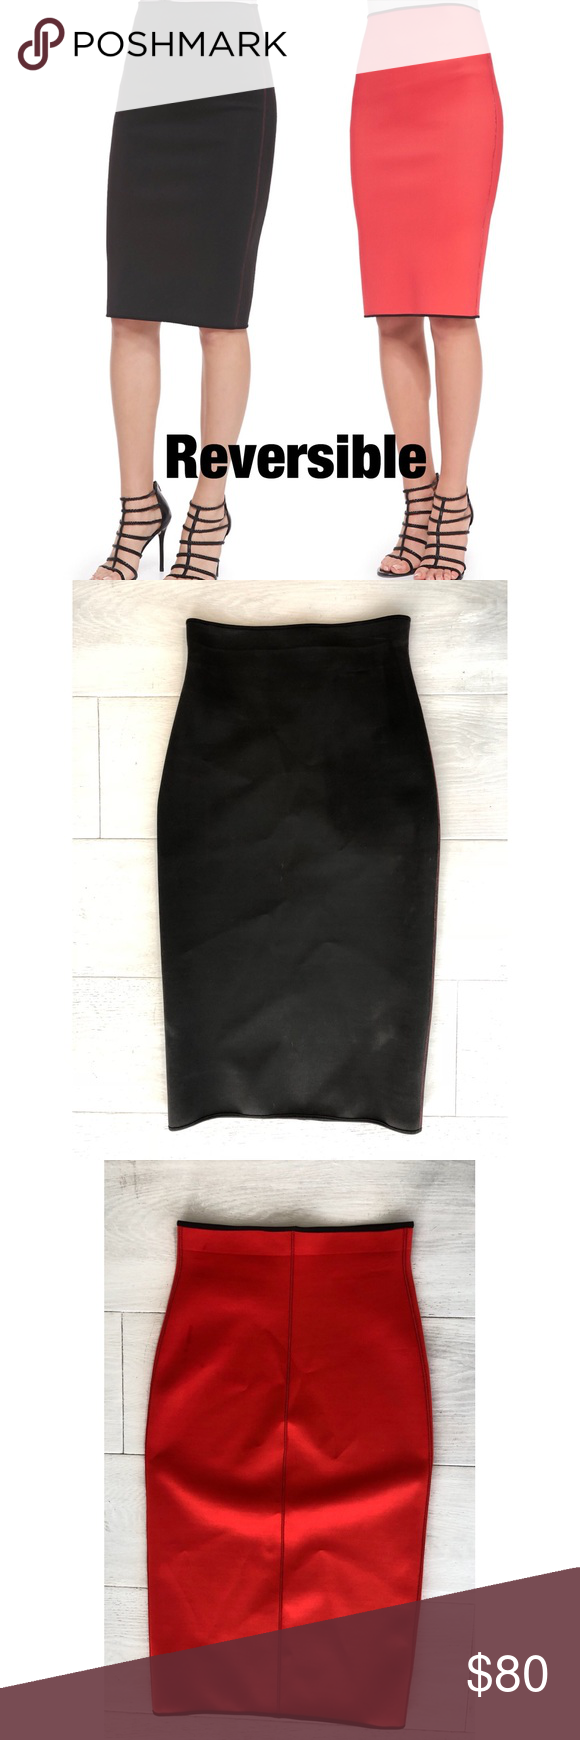 4ed4e3c03 Clover canyon reversible skirt Clover Canyon solid neoprene pencil skirt.  Reversible from red to black